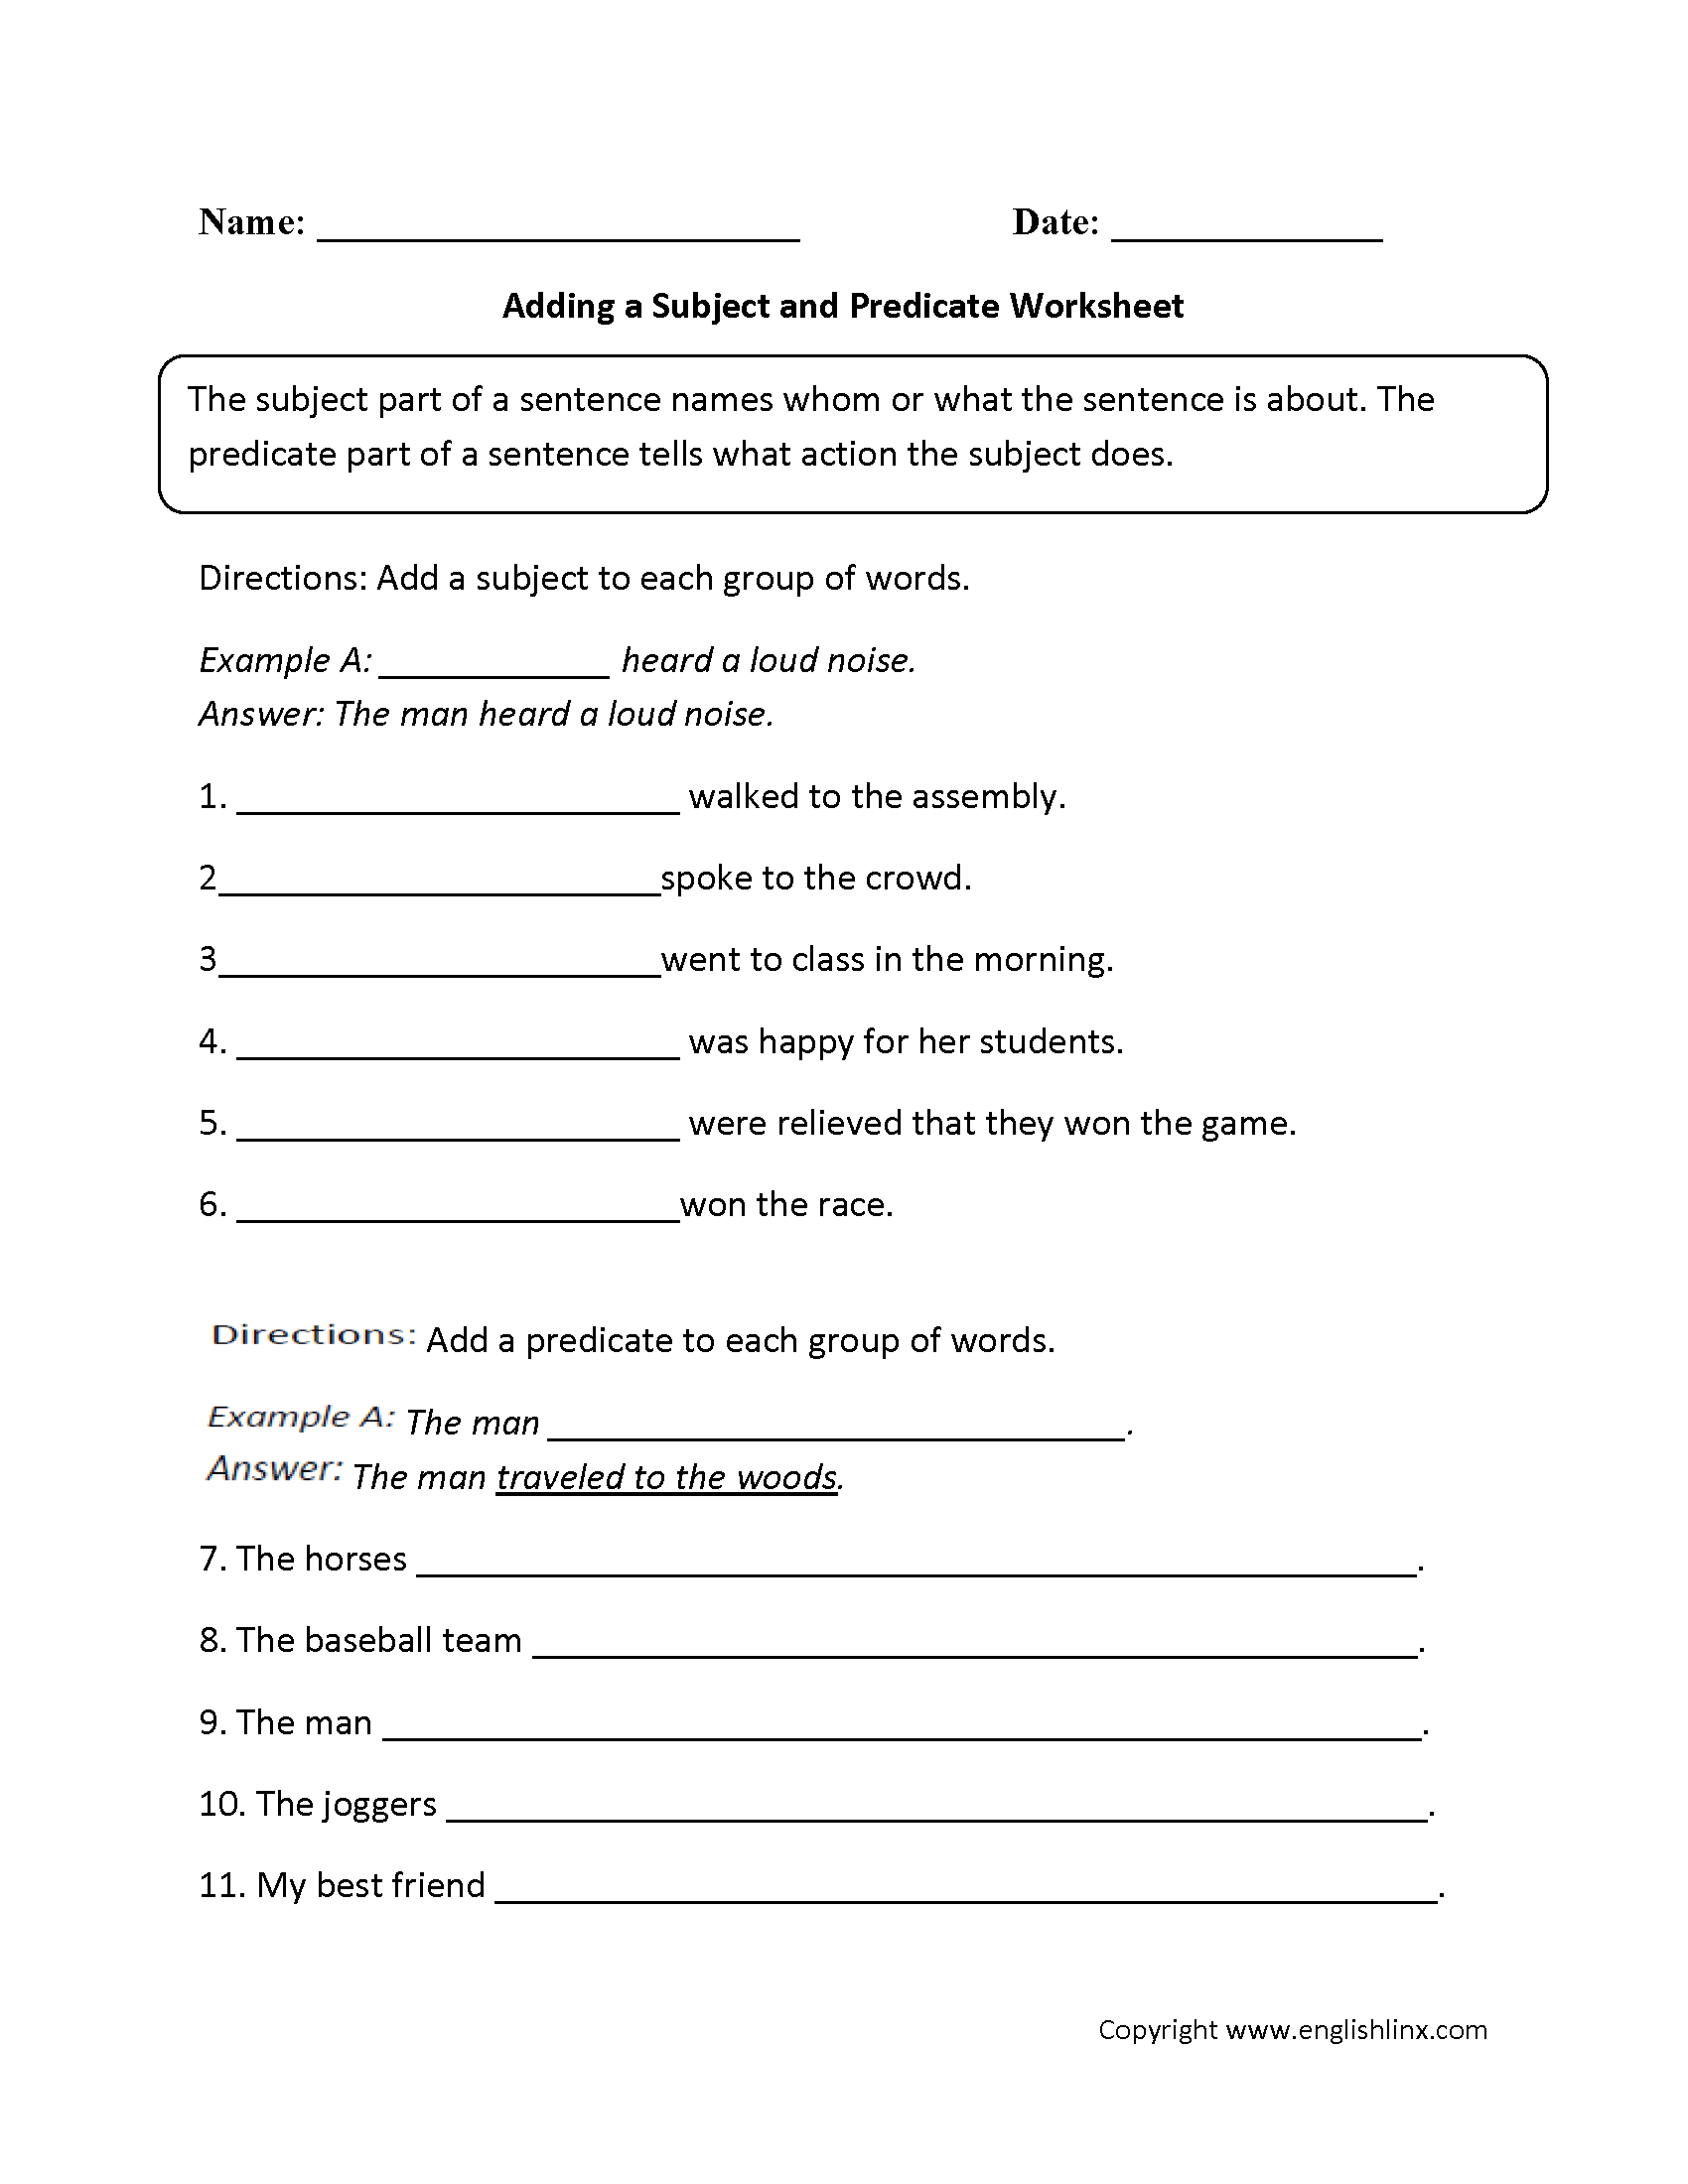 Worksheets Subject Predicate Worksheets 3rd Grade englishlinx com subject and predicate worksheets adding a subejct worksheet